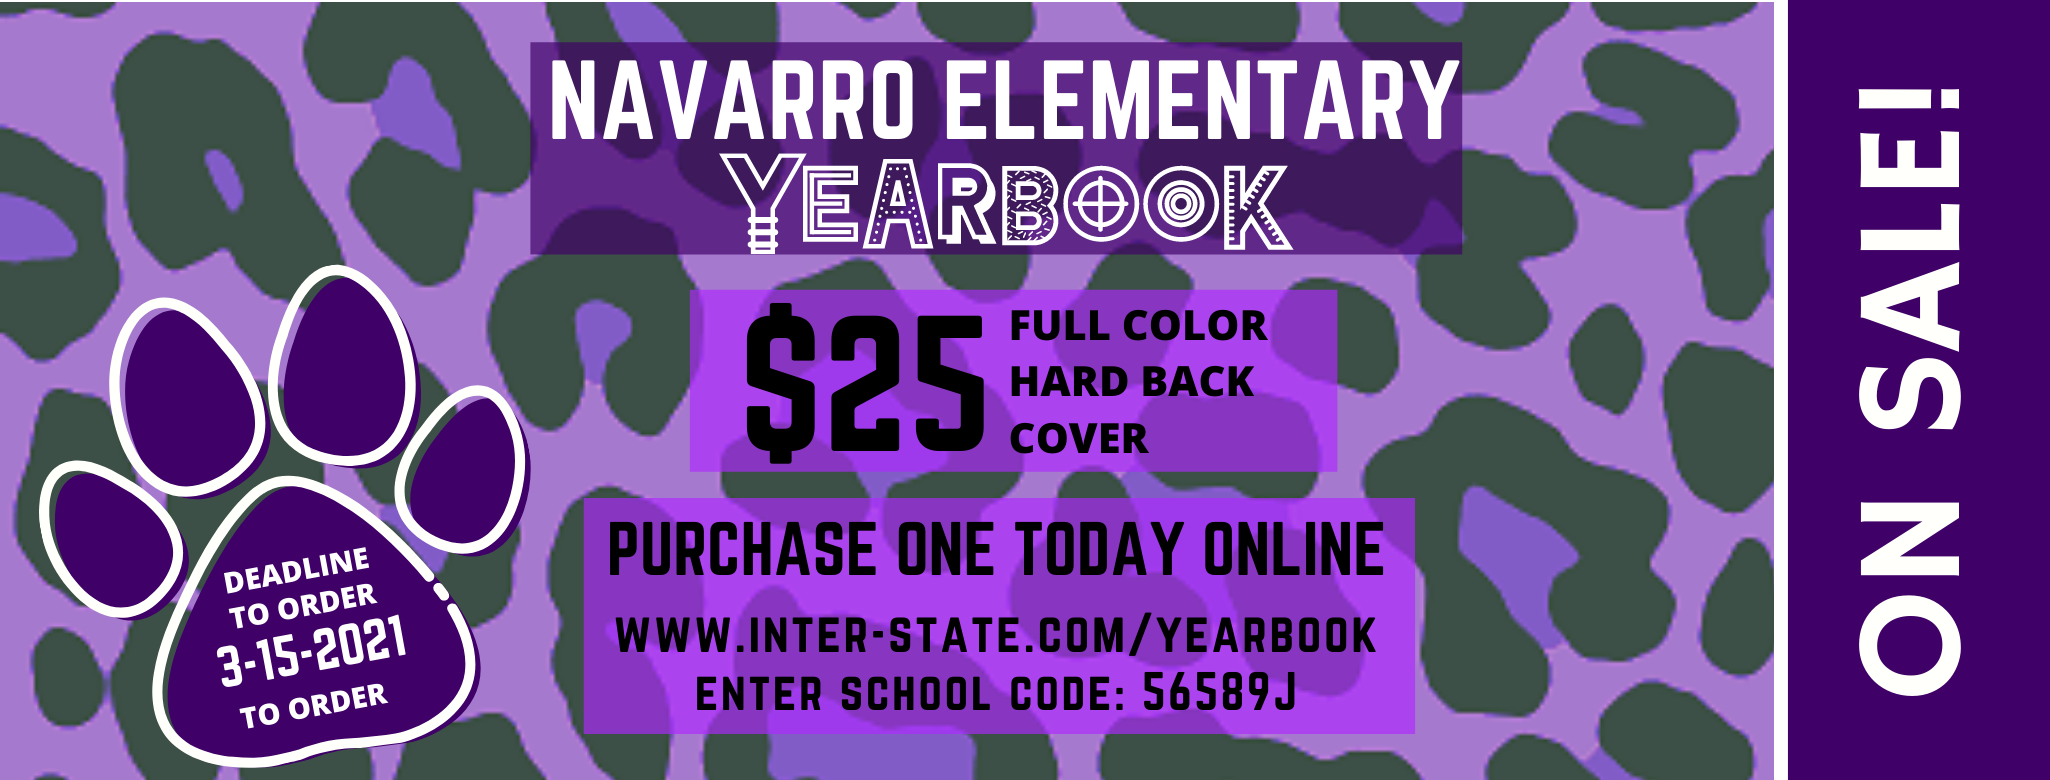 Yearbook Sales $25